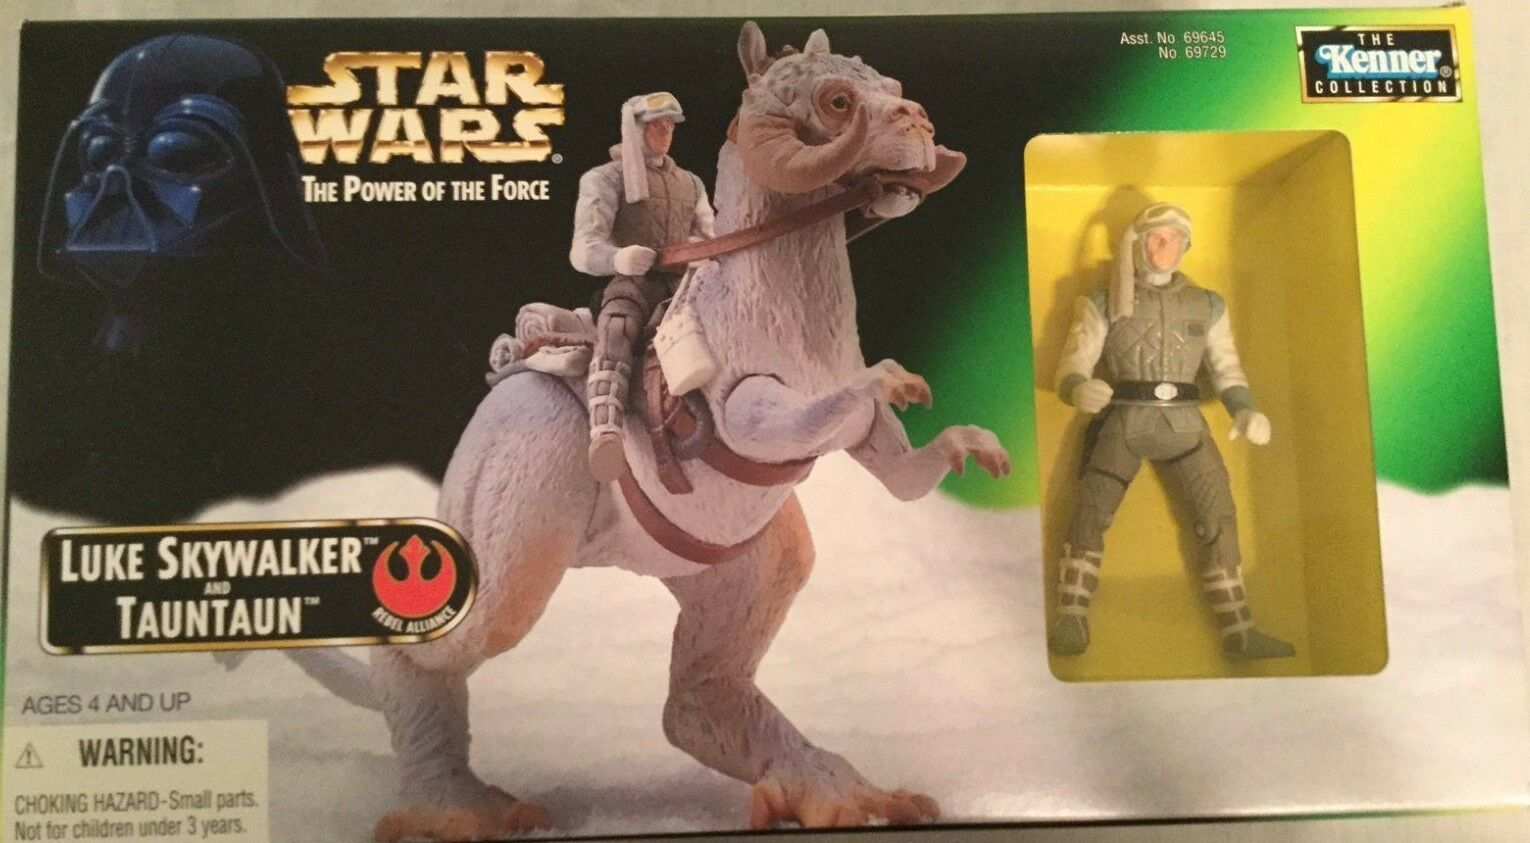 STAR WARS POTF SET OF 3 TRILOGY SERIES ACTIONS FIGURES WITH CREATURES.